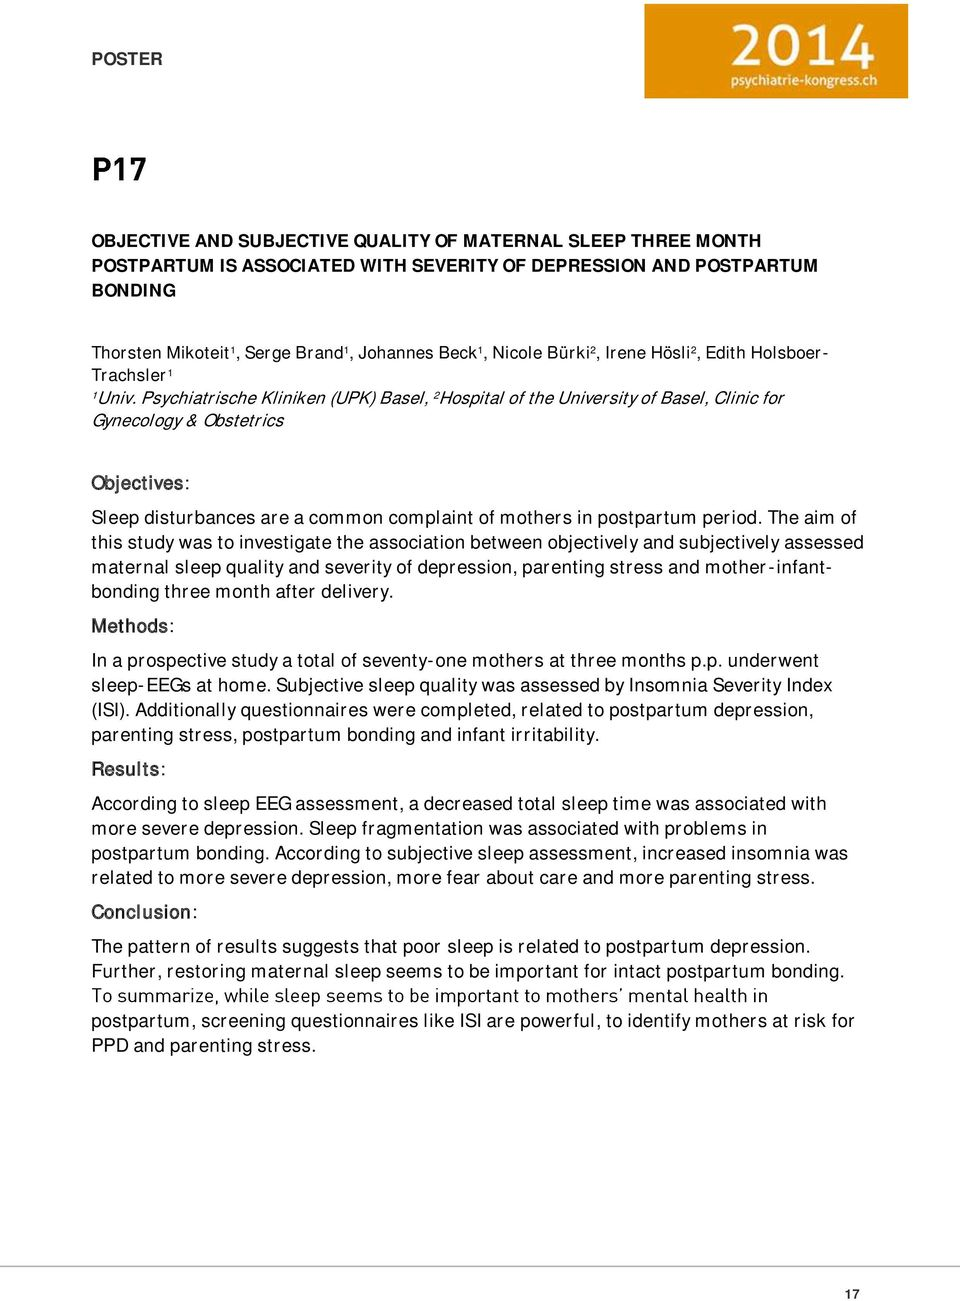 Psychiatrische Kliniken (UPK) Basel, 2 Hospital of the University of Basel, Clinic for Gynecology & Obstetrics Objectives: Sleep disturbances are a common complaint of mothers in postpartum period.